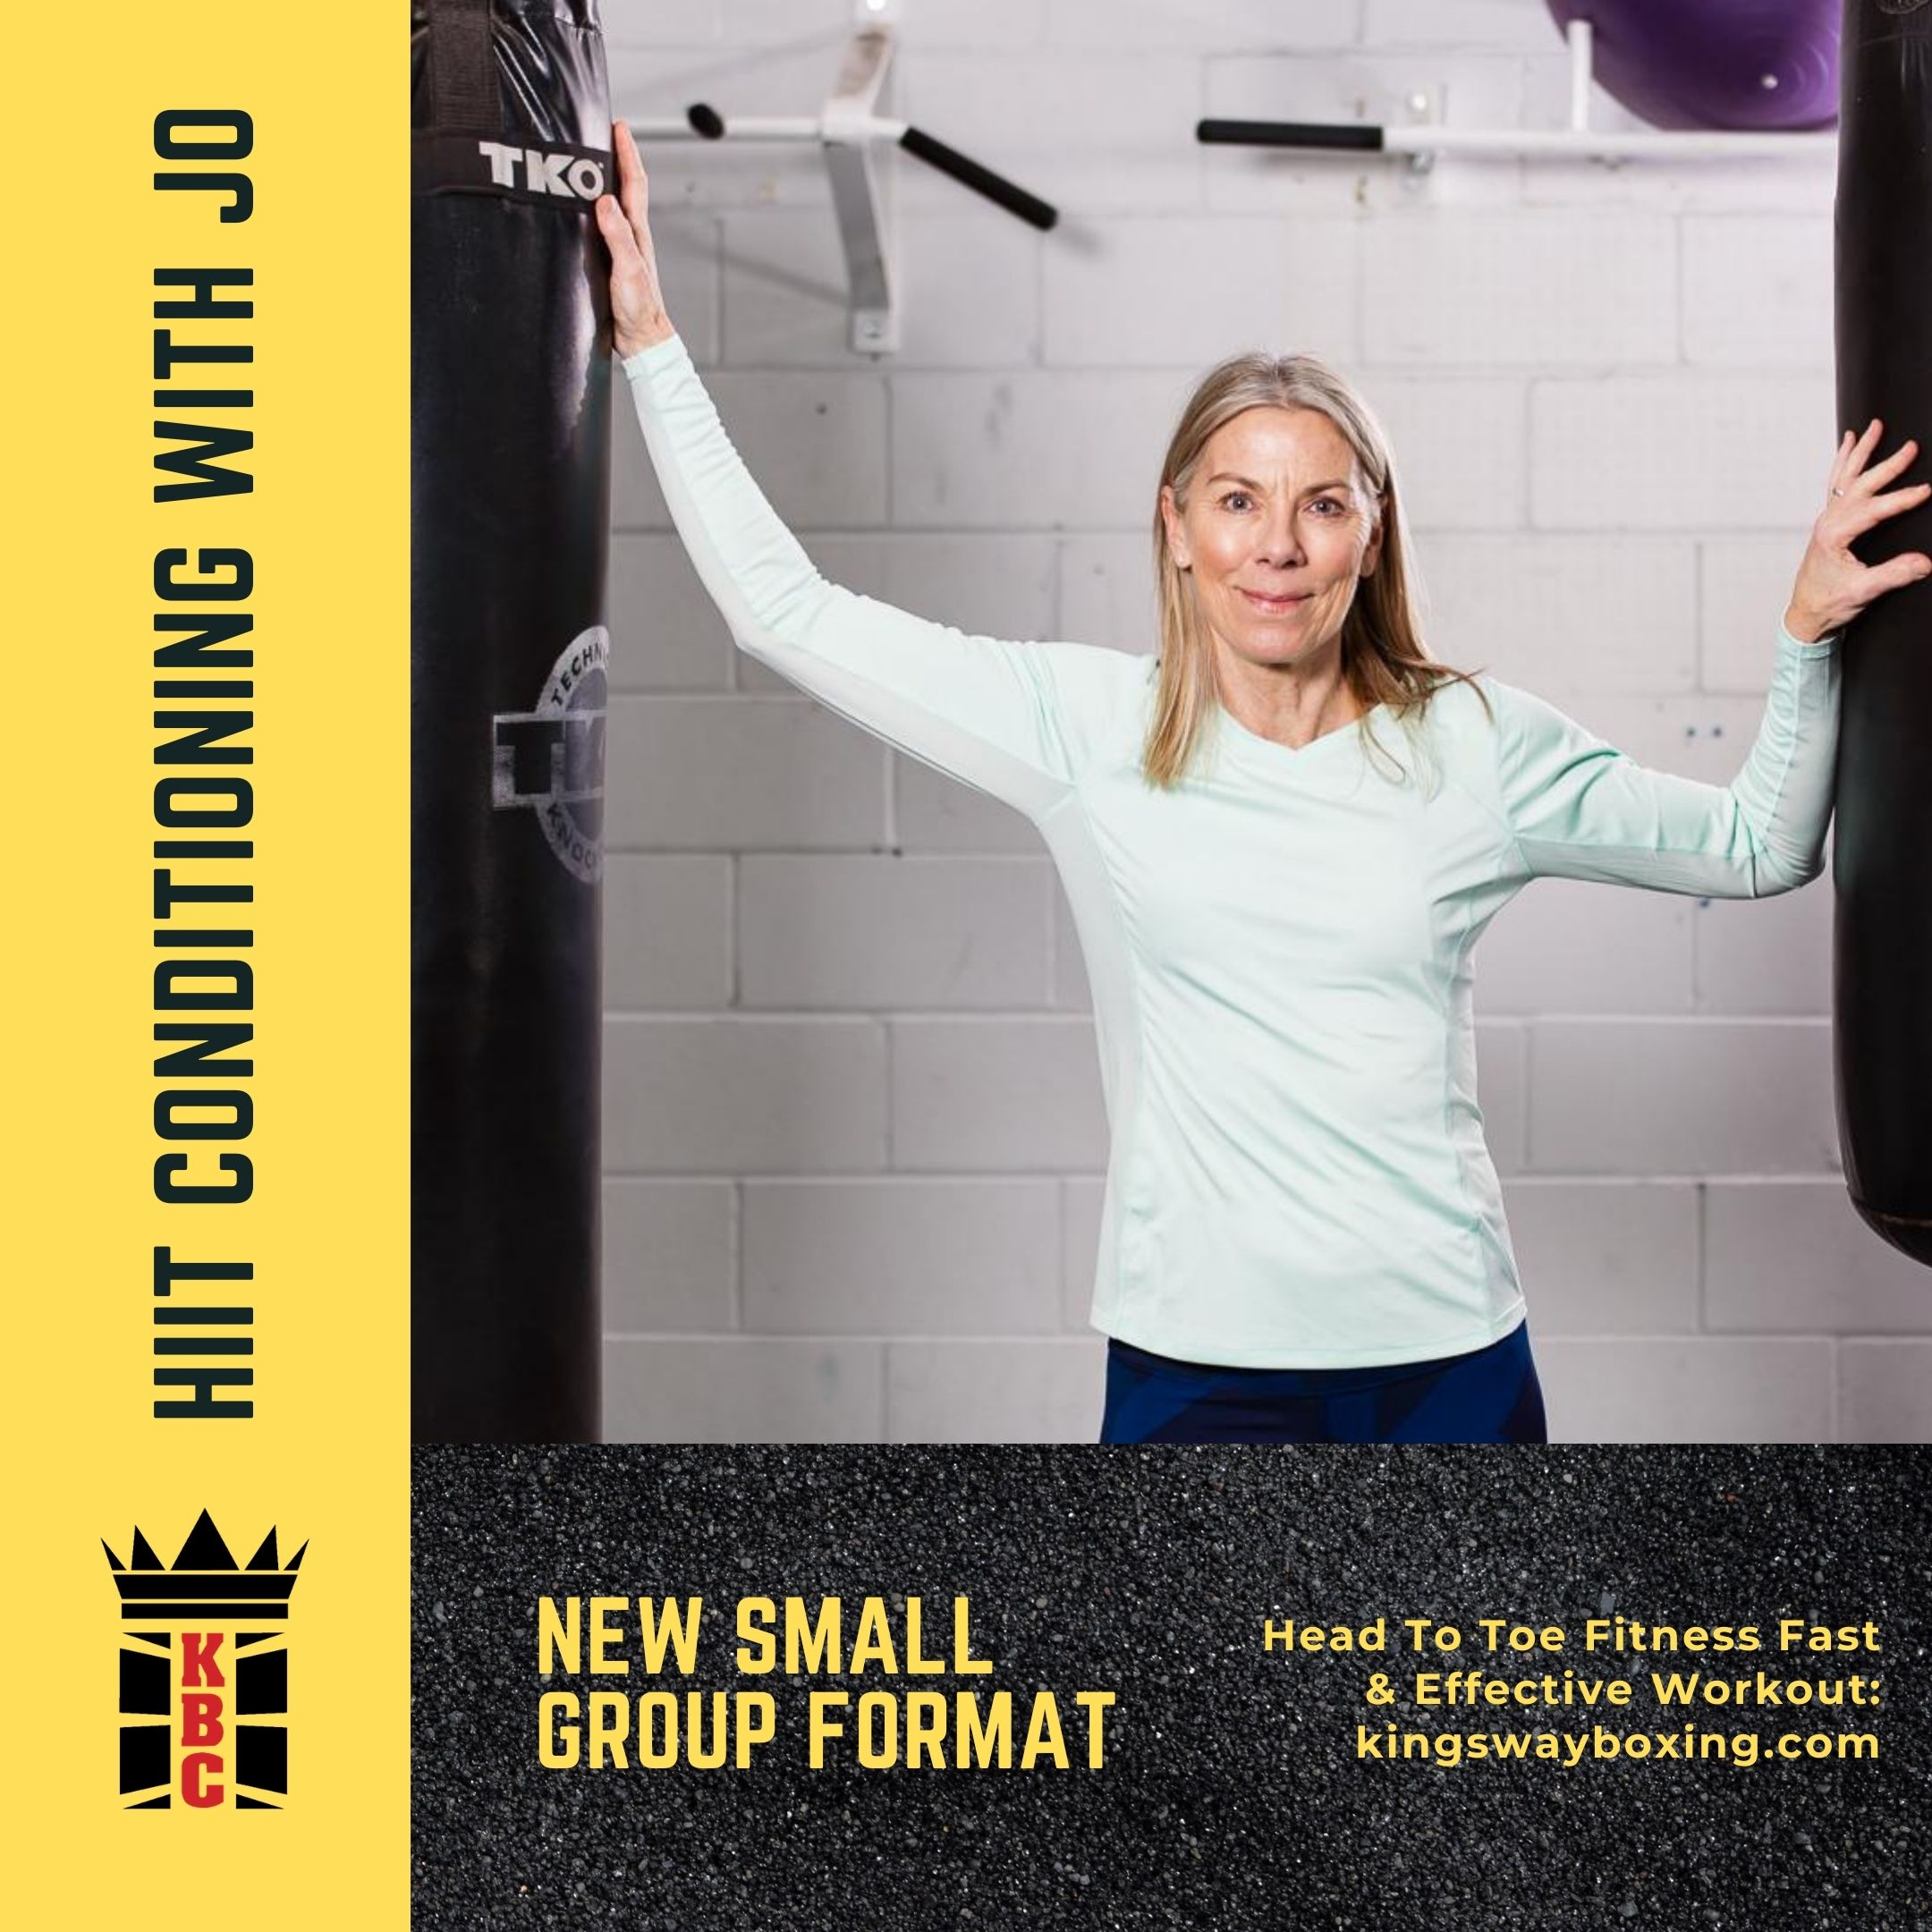 HIIT Is Back With A New Small Group Format!